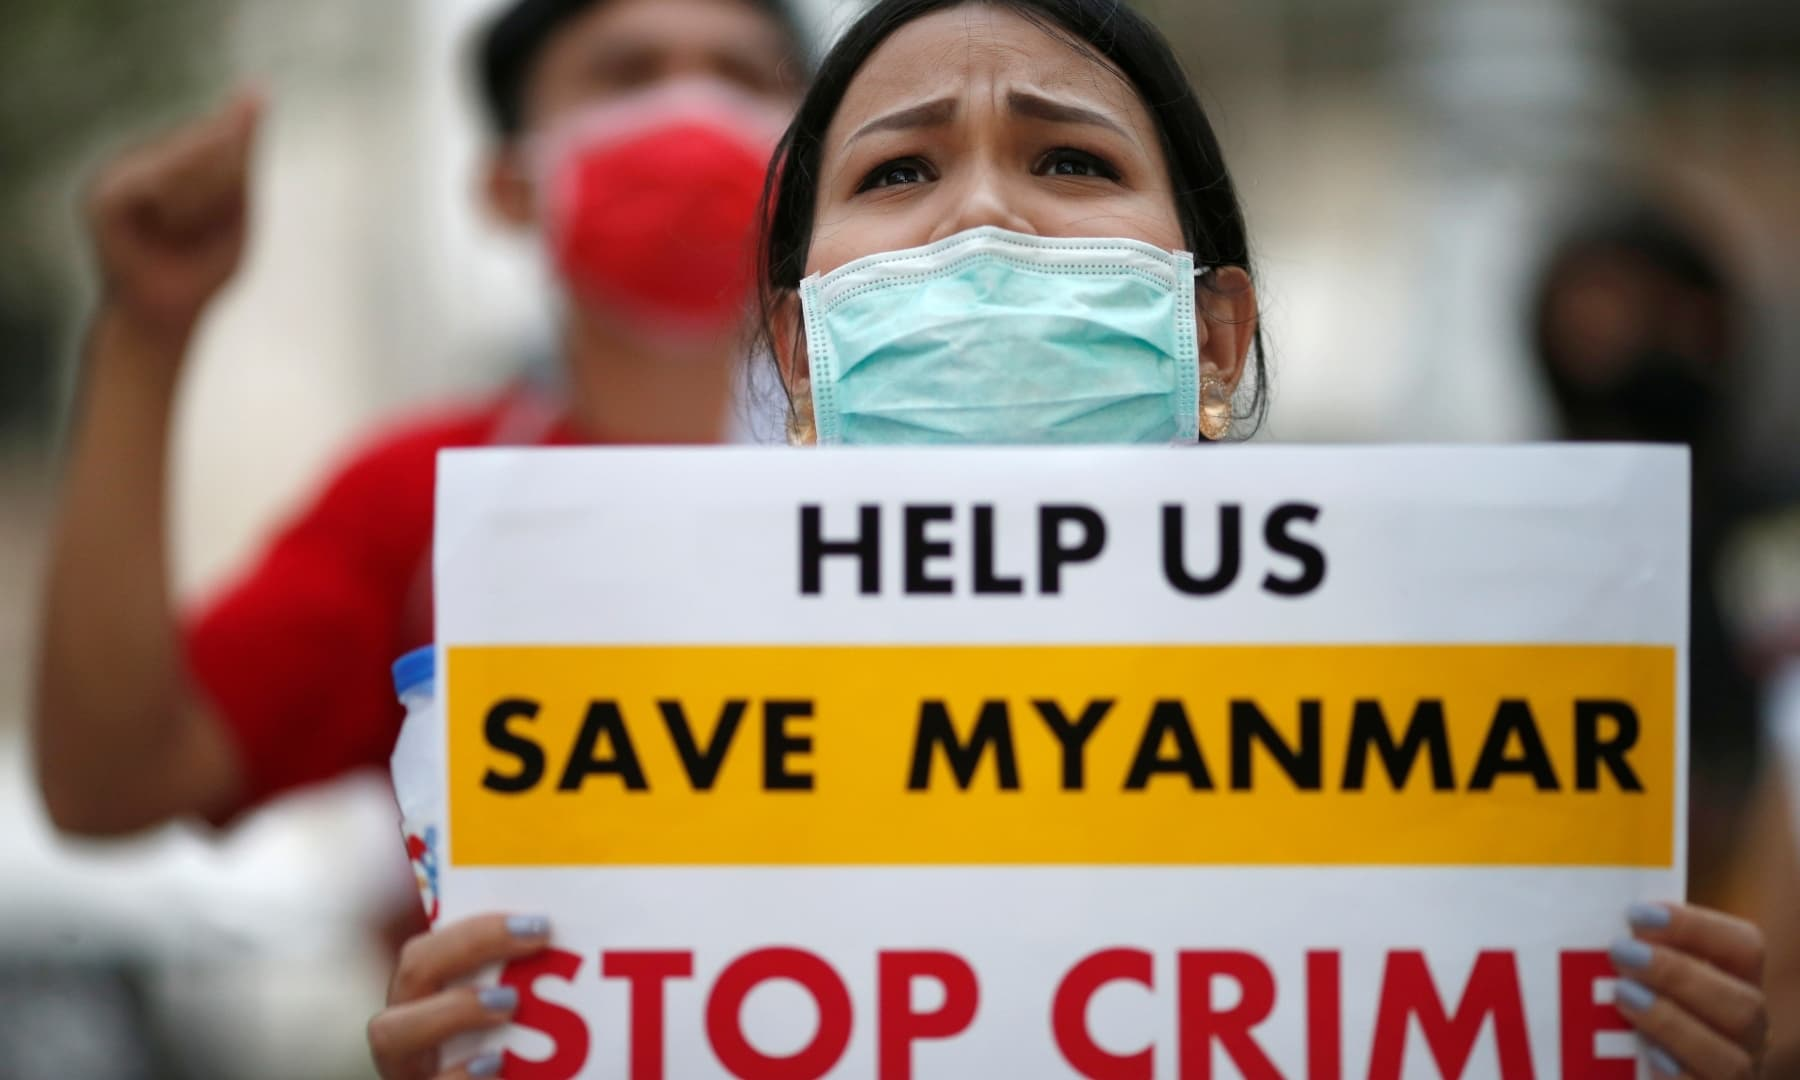 Myanmar citizens protest against the military coup in front of the UN office in Bangkok, Thailand February 17. — Reuters